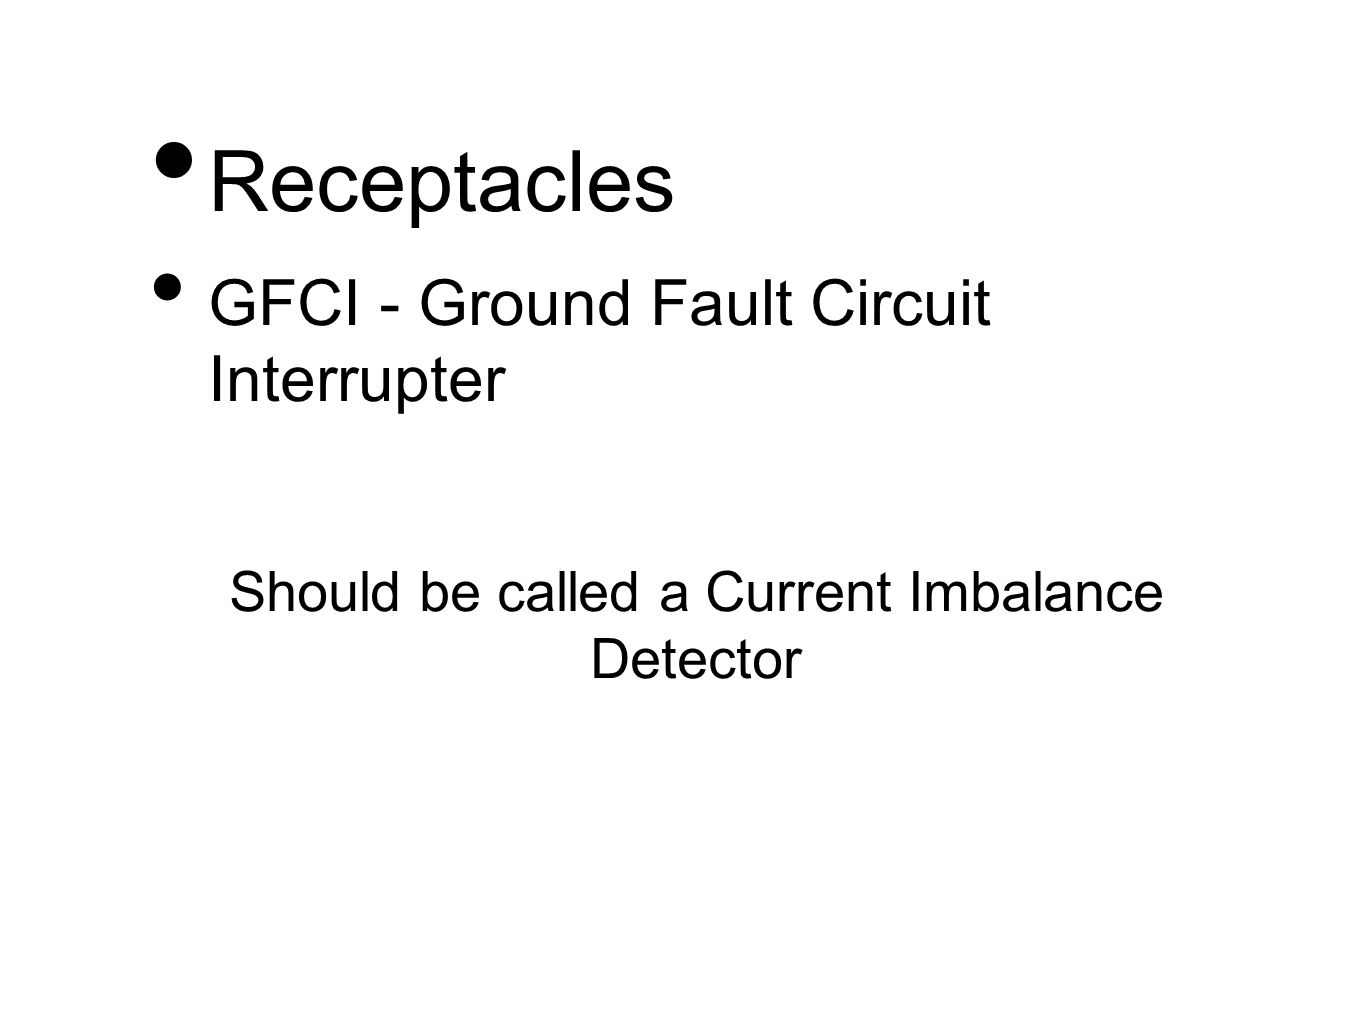 Receptacles GFCI - Ground Fault Circuit Interrupter Should be called a Current Imbalance Detector